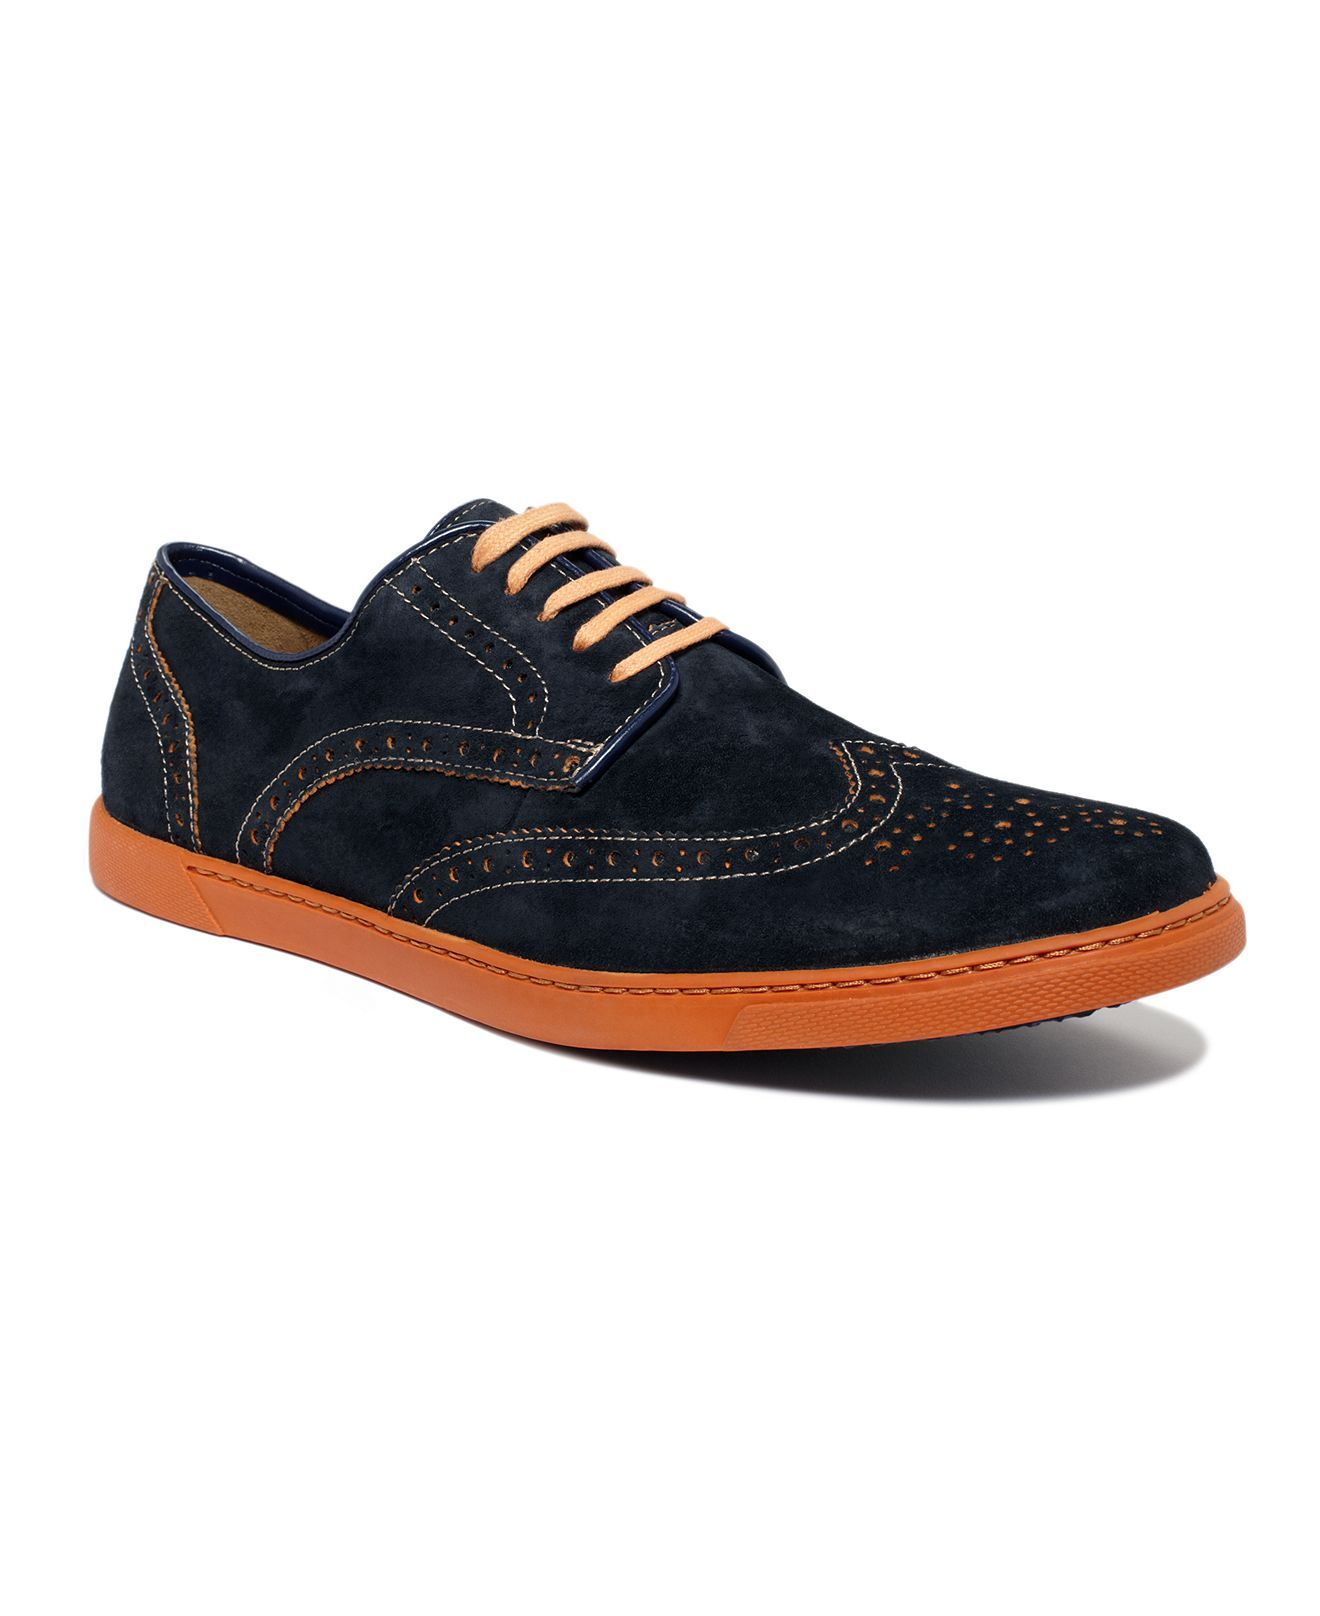 Hush Puppies Shoes, Carver Wing Tip LaceUp Shoes Mens